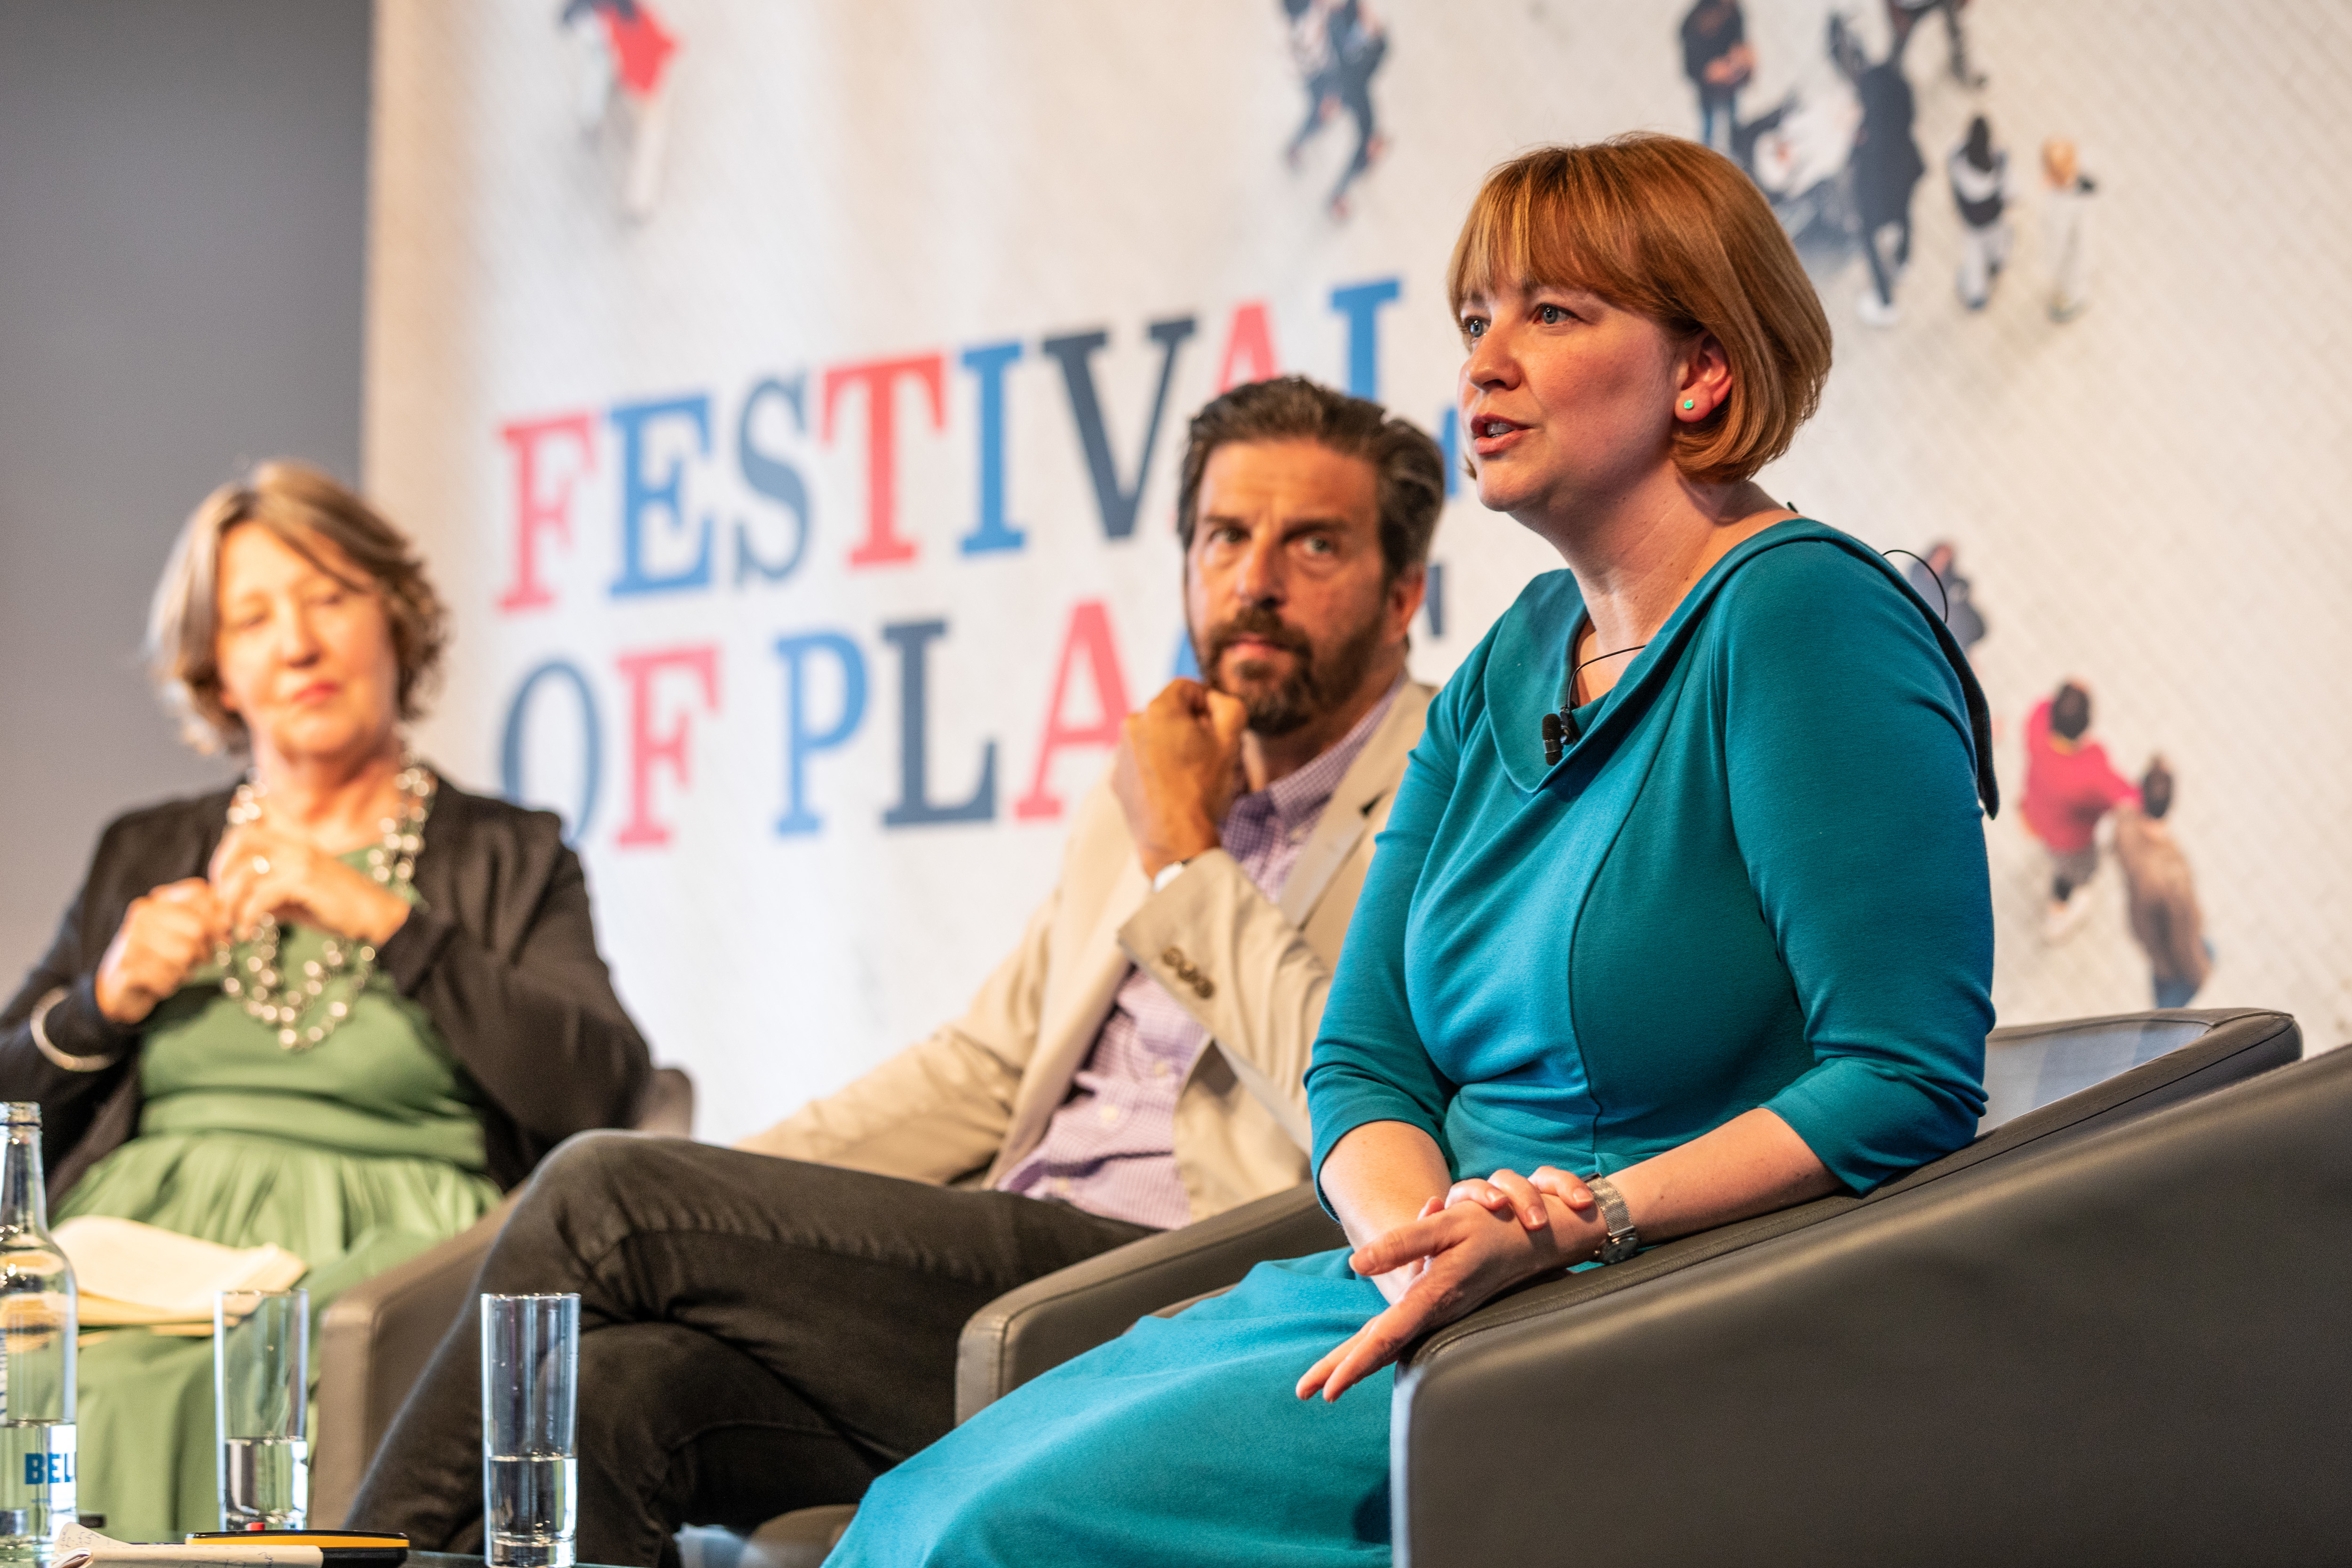 Patricia Brown, Rachel Fisher and Tim Tompkins on stage at the Festival of Place 2019